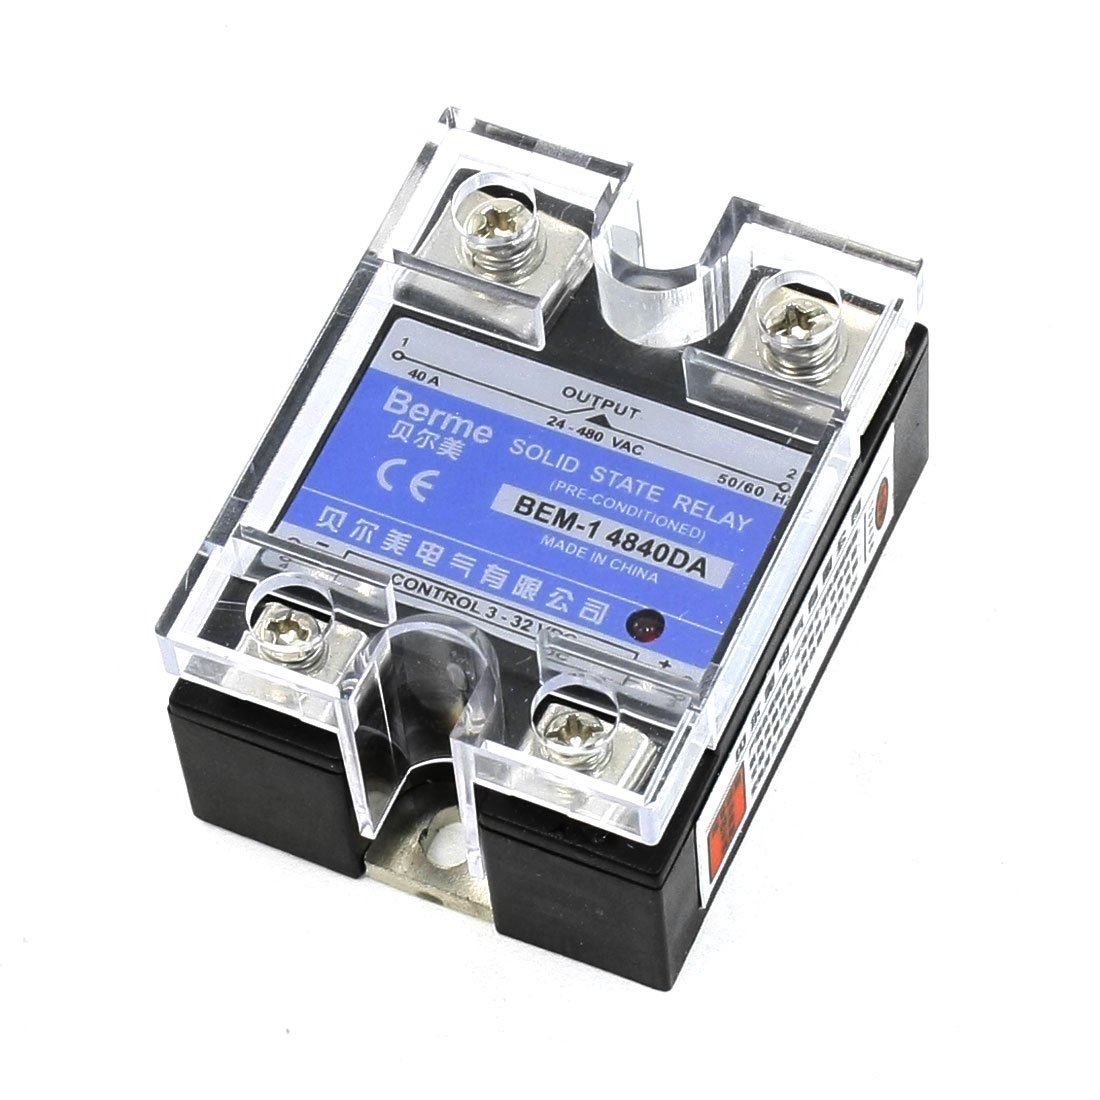 IMC Hot 24-480V AC DC to 3-32VDC Output Single Phase SSR Solid State Relay 40A ssr 80aa ac output solid state relays 90 280v ac to 24 480v ac single phase solid relay module rele 12v 80a ks1 80aa